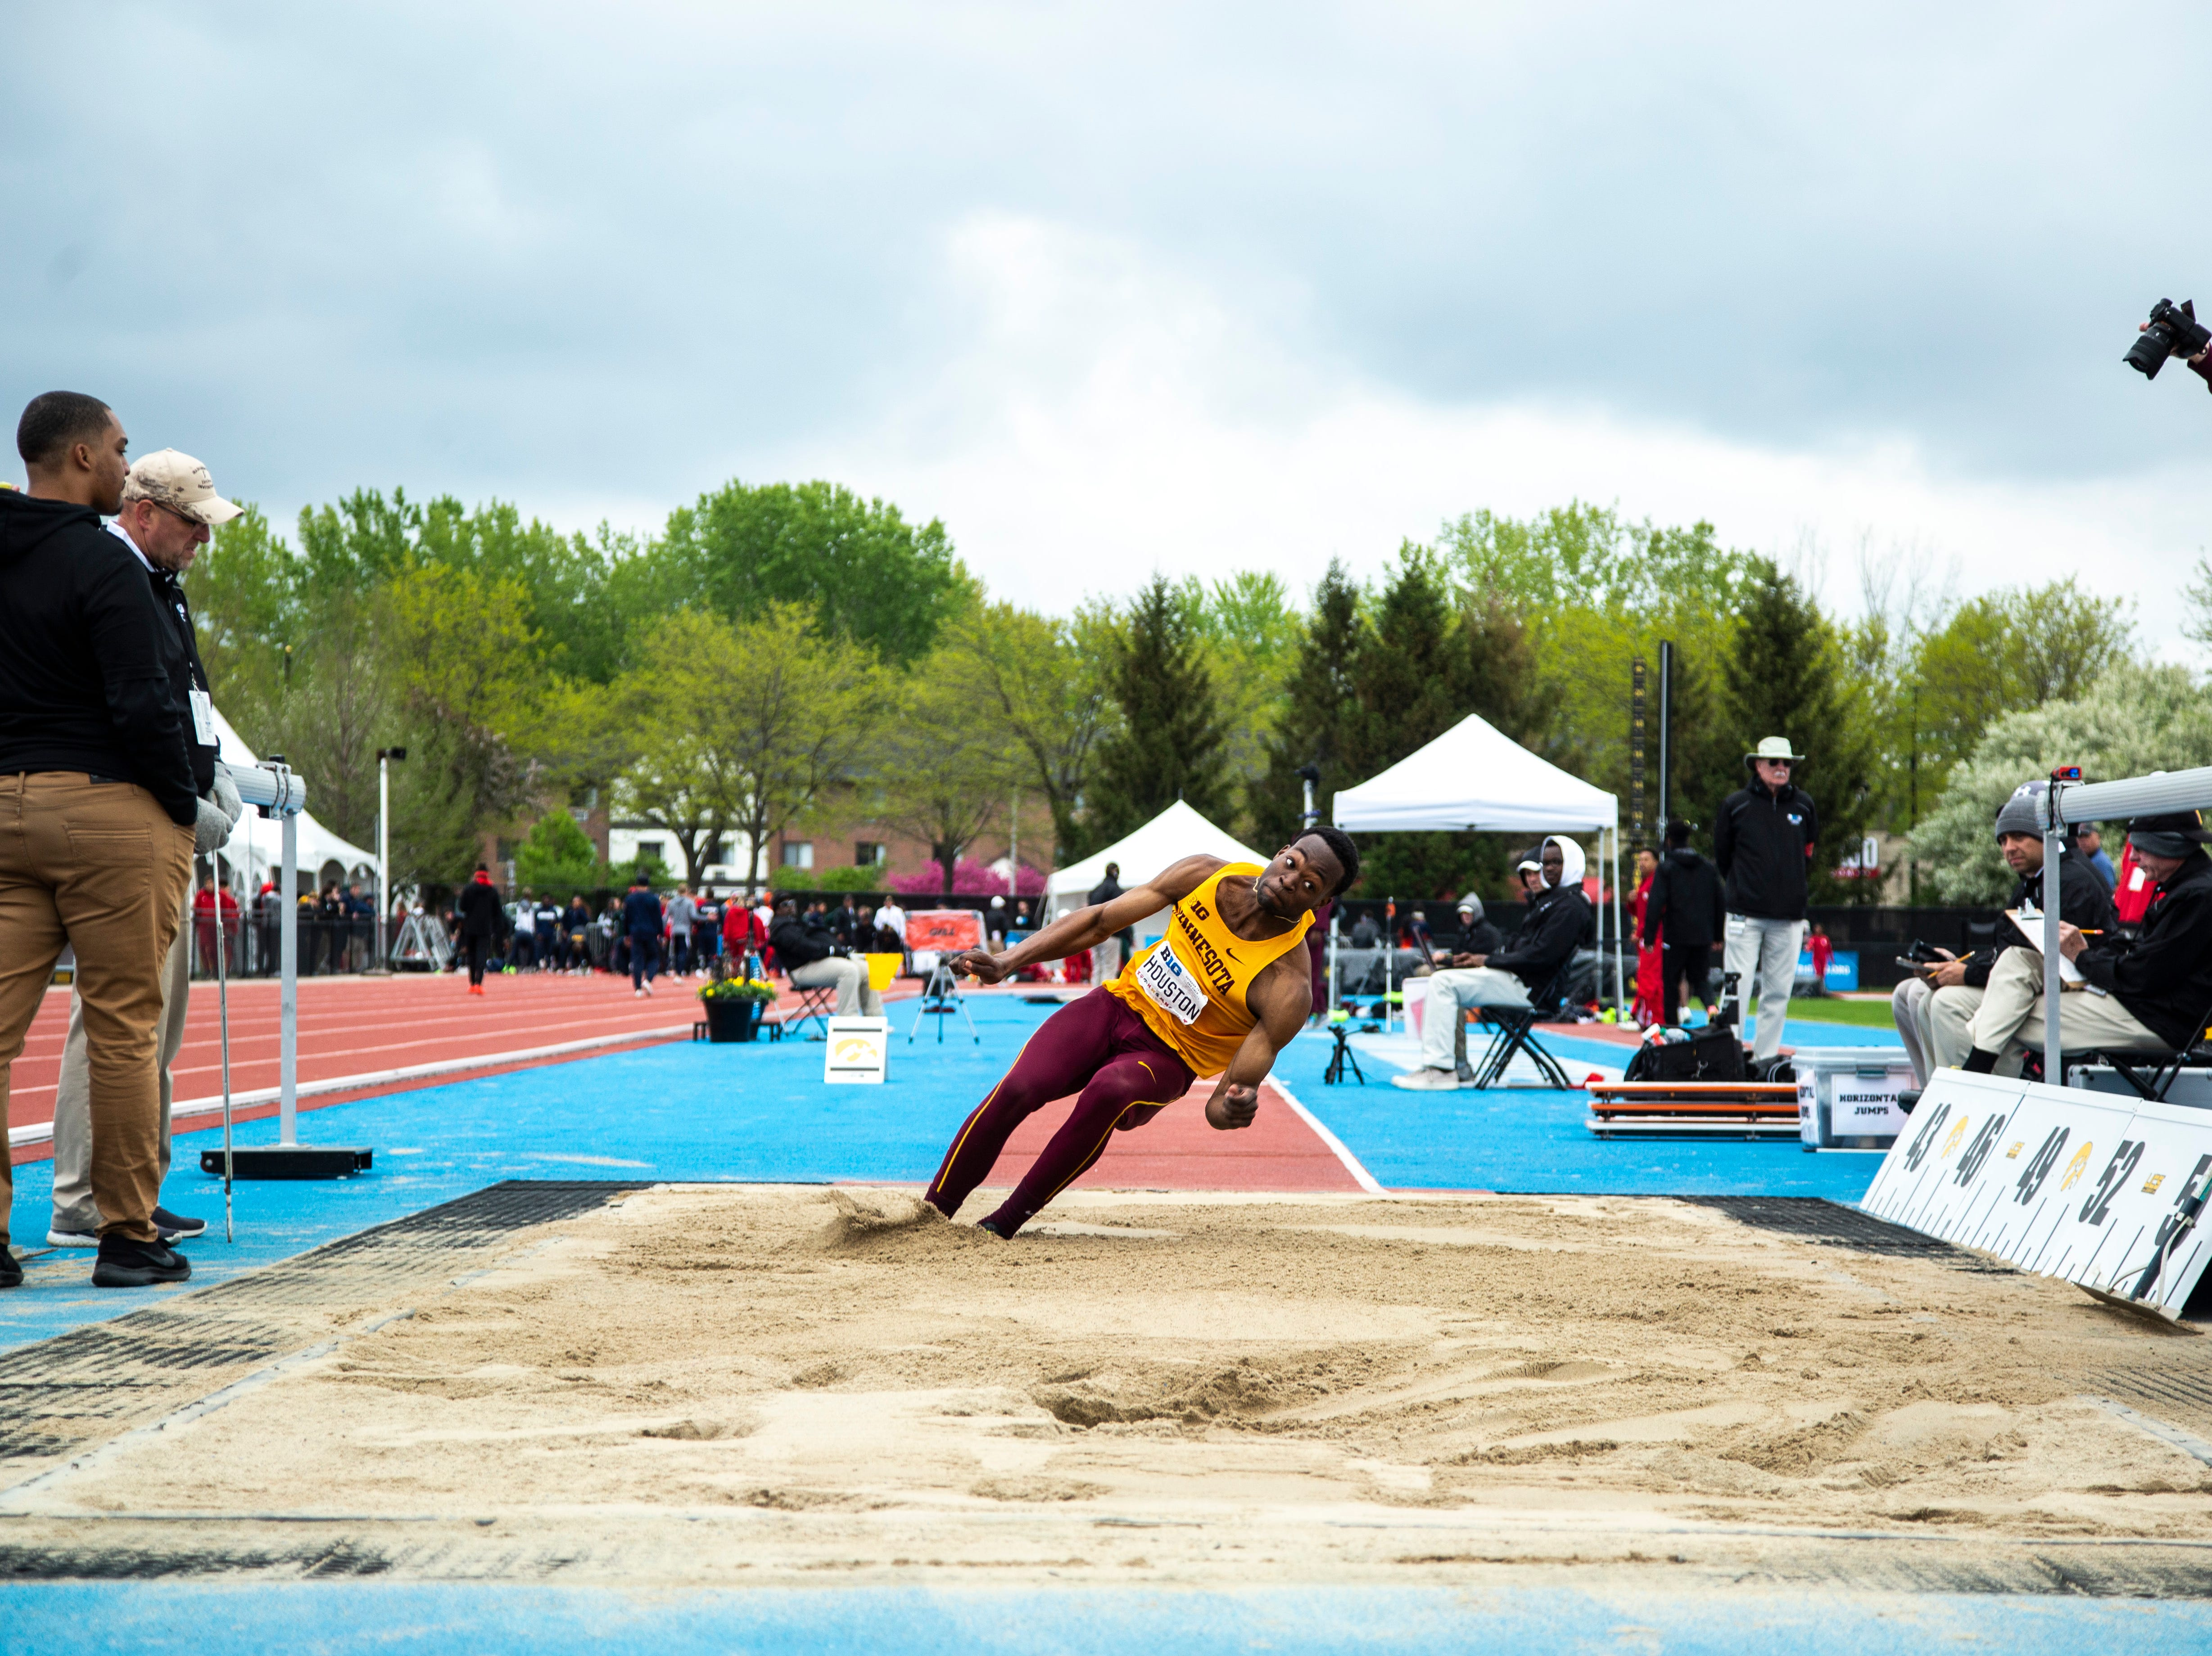 Minnesota junior Sammie Houston compete in triple jump during the final day of Big Ten track and field outdoor championships, Sunday, May 12, 2019, at Francis X. Cretzmeyer Track on the University of Iowa campus in Iowa City, Iowa.